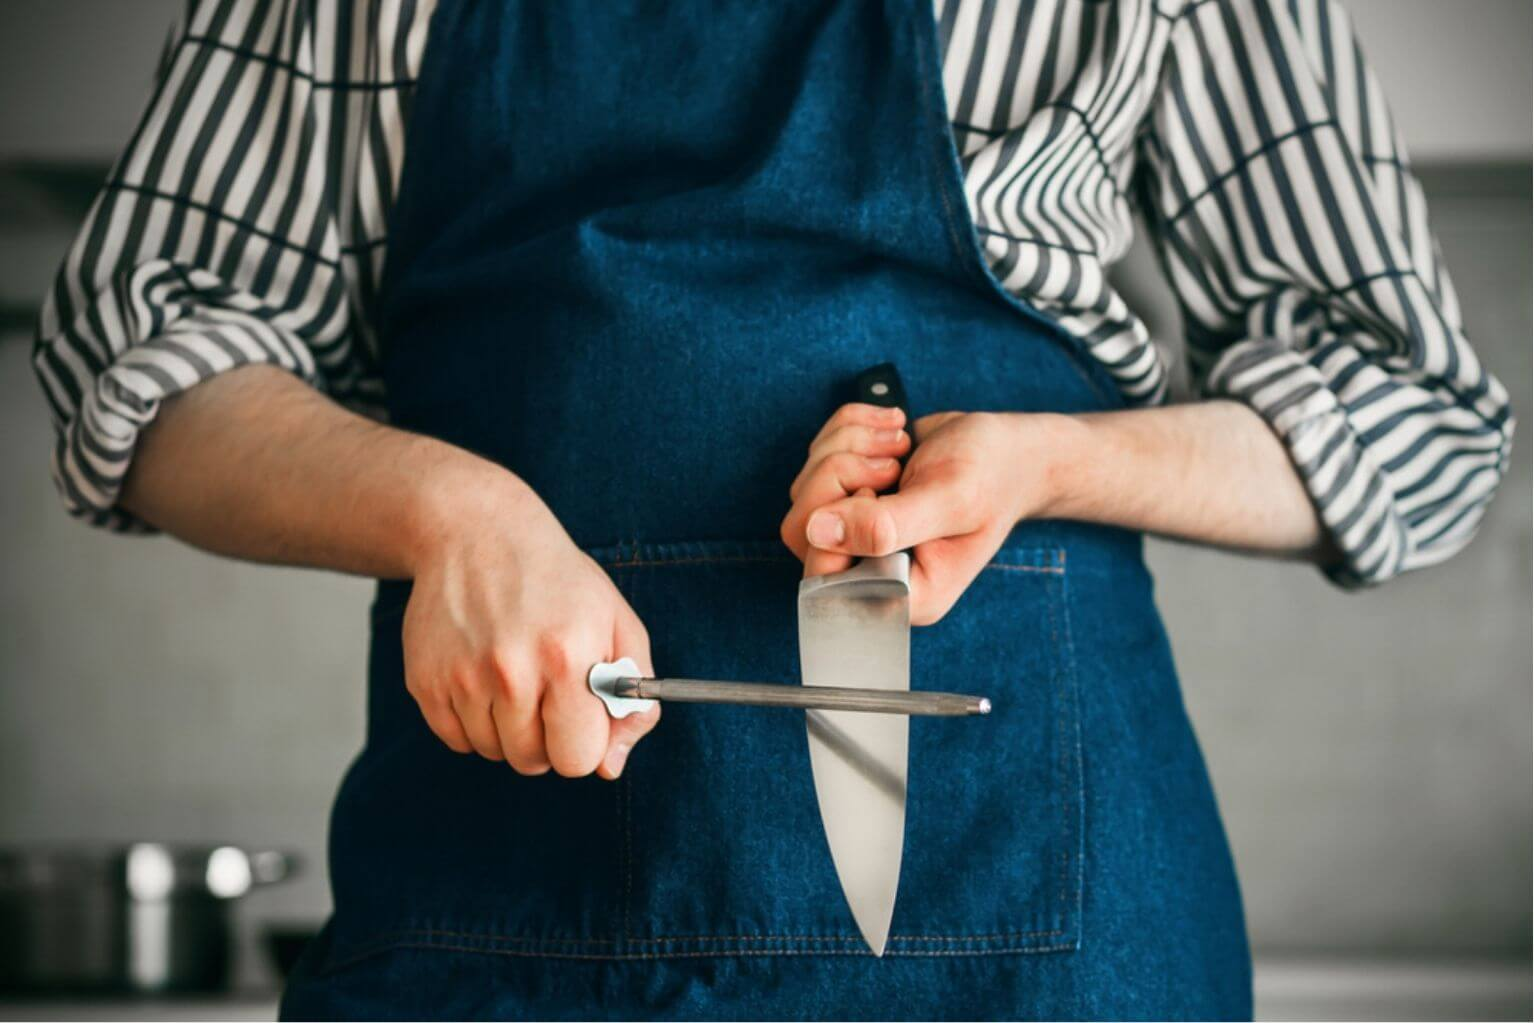 Person wearing a blue apron and a striped shirt sharpening a kitchen knife with a whetstone